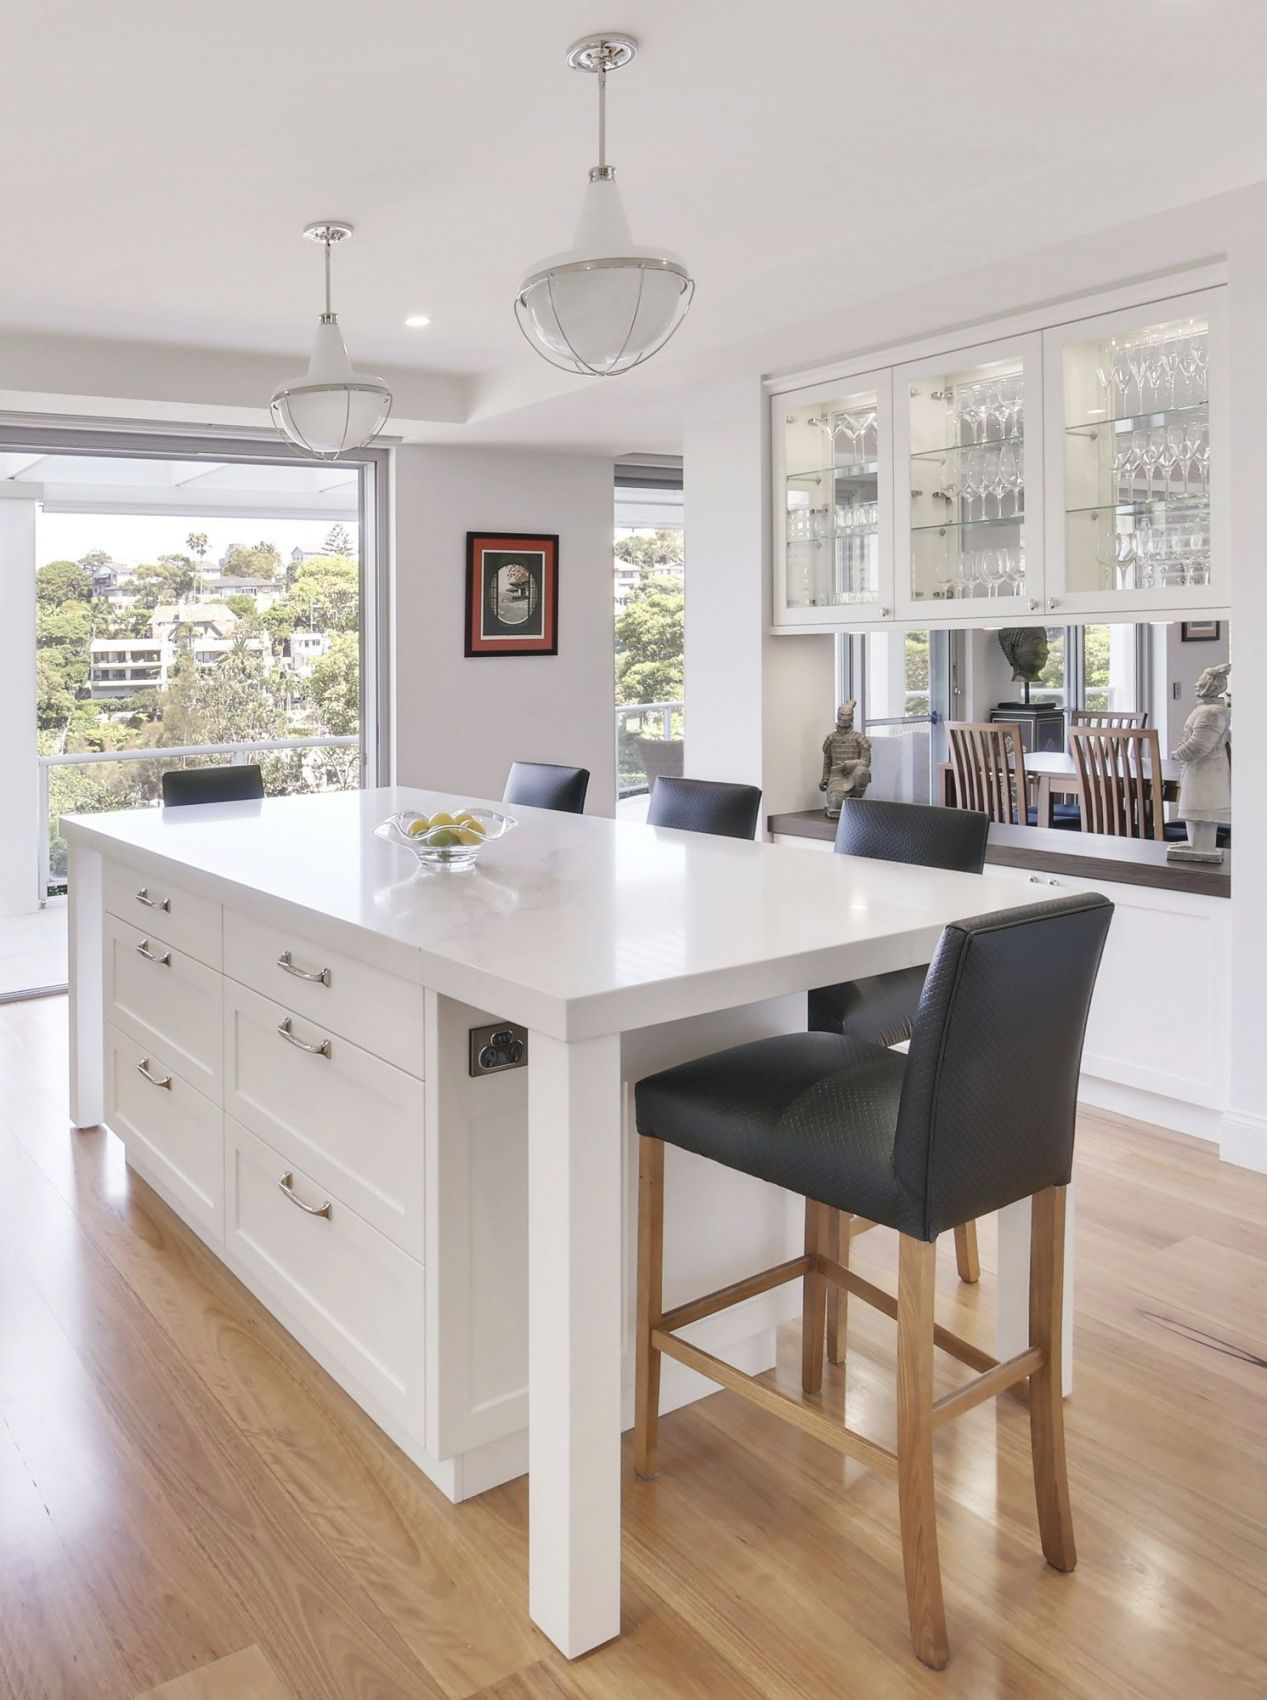 pin by john clerkin on kitchen with images kitchen island table combination kitchen island on kitchen ideas with island id=68128